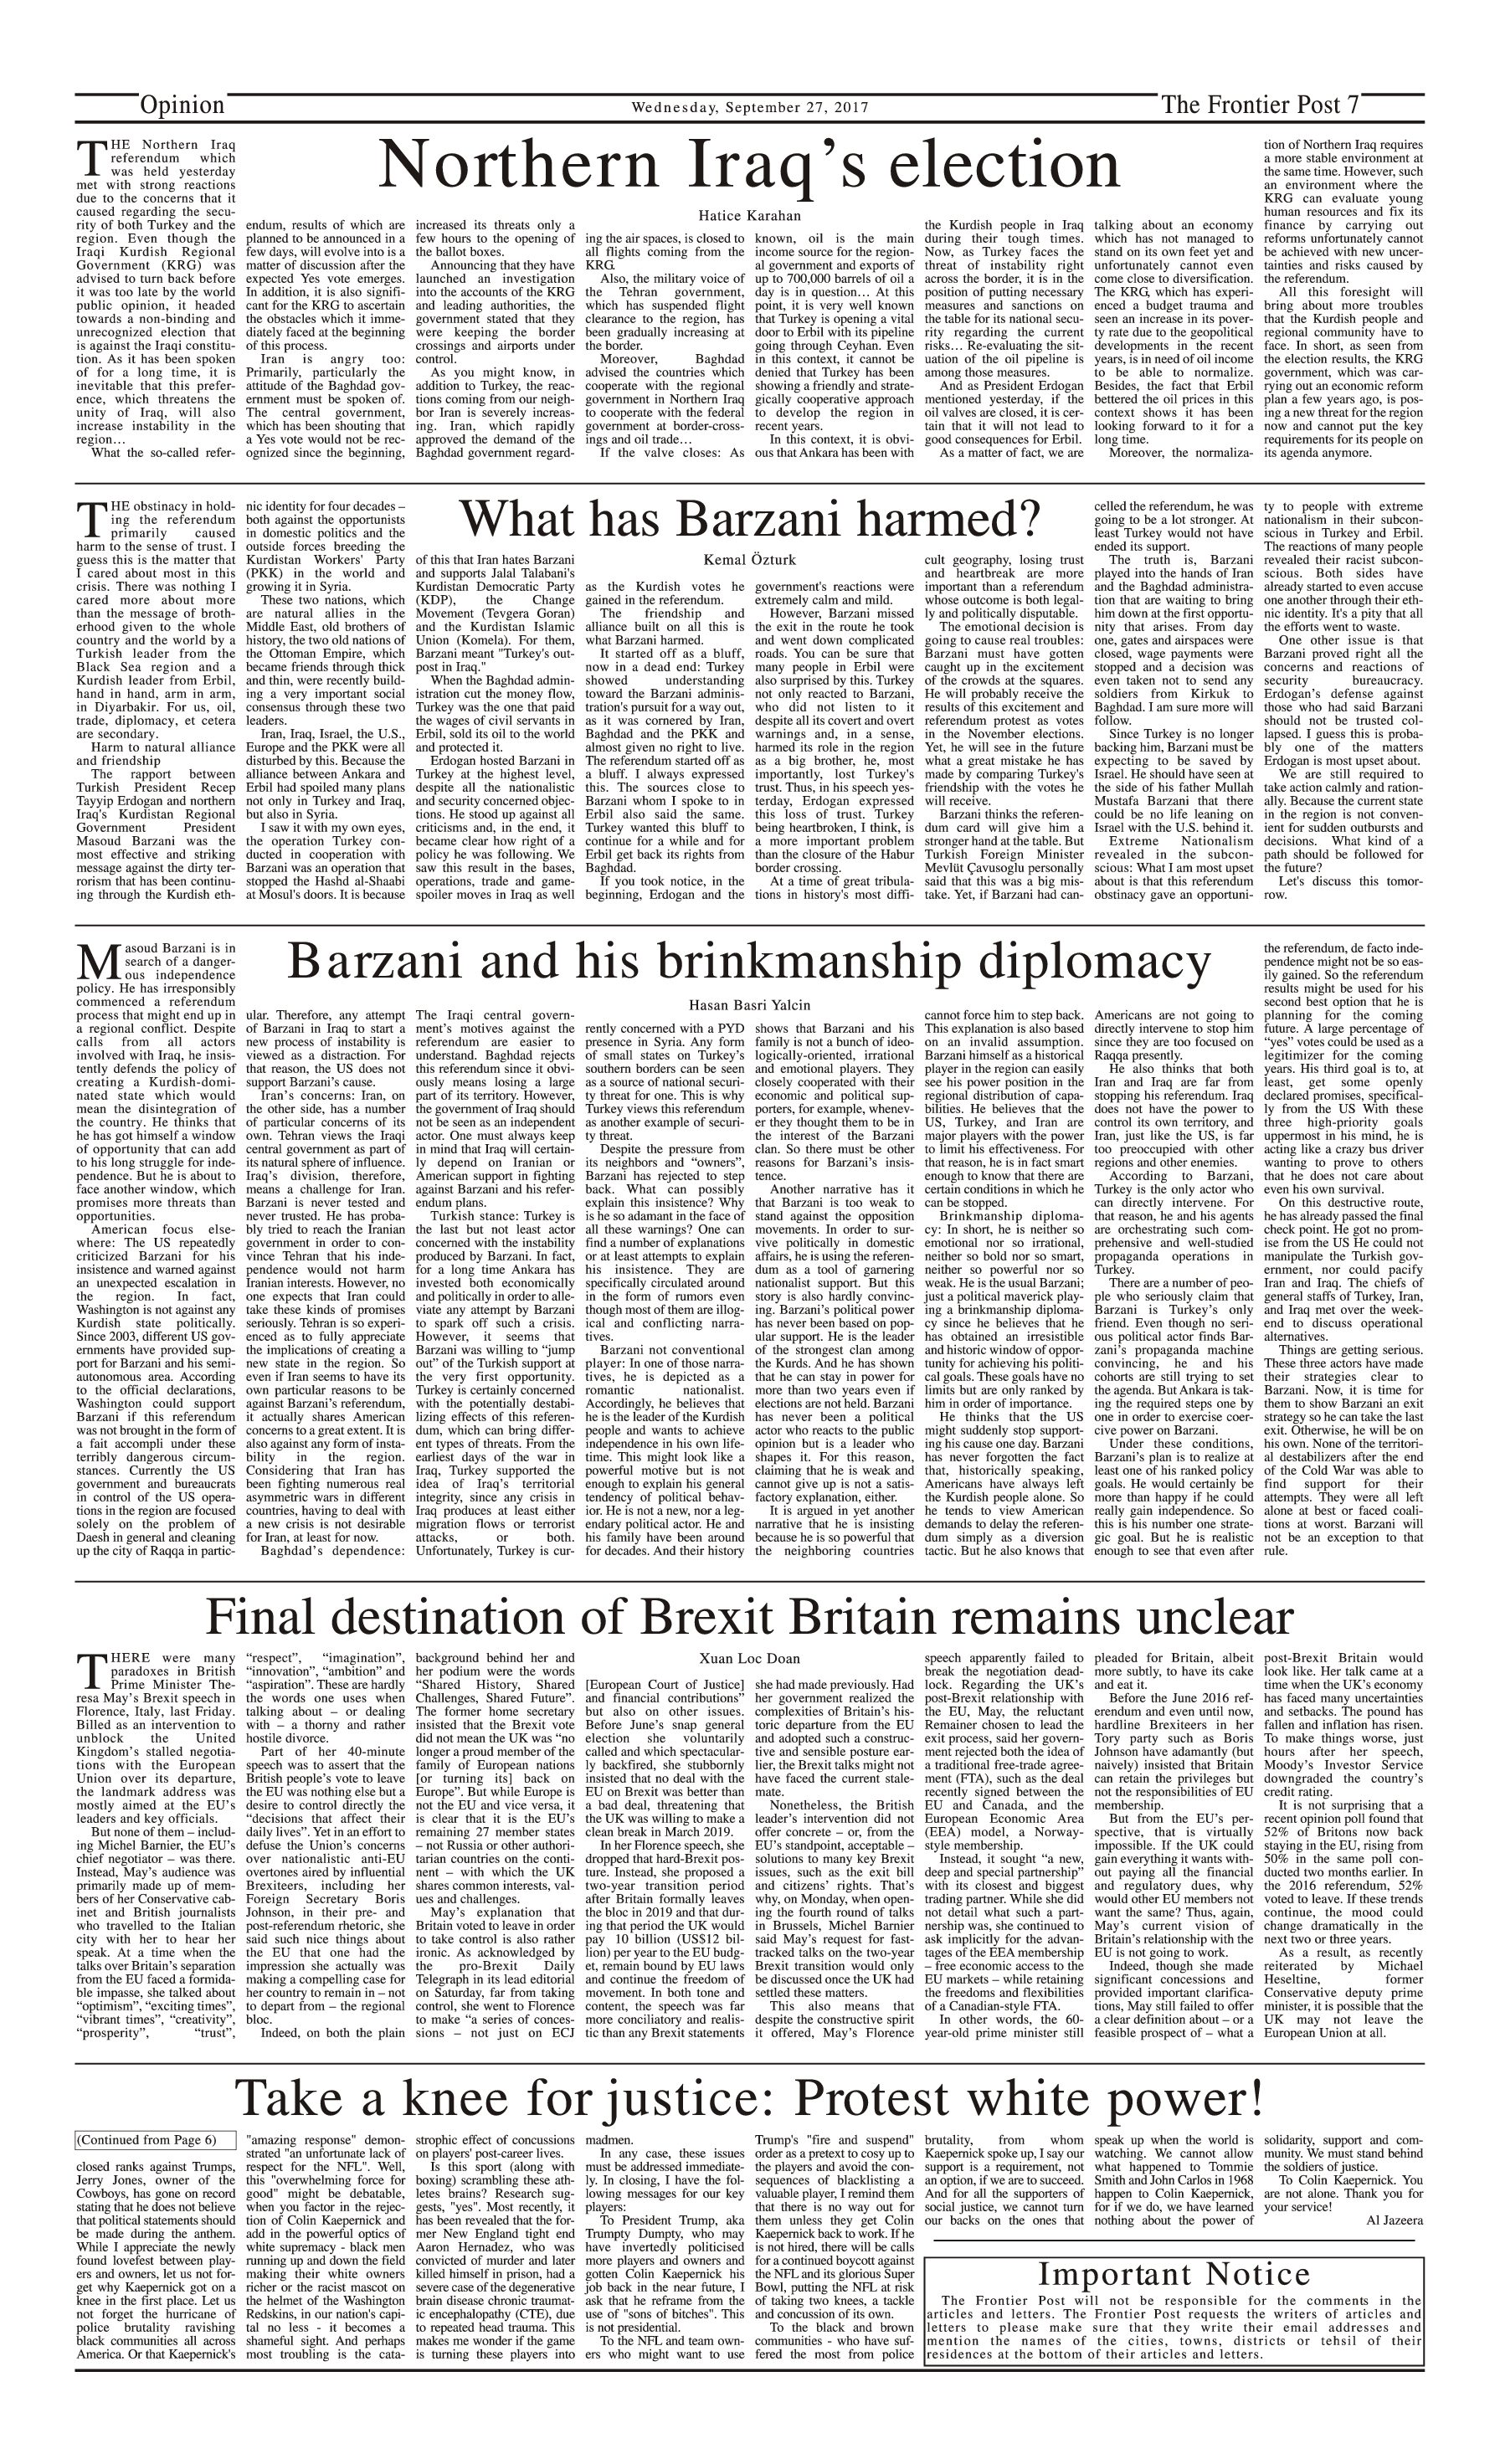 Opinion Page 27-09